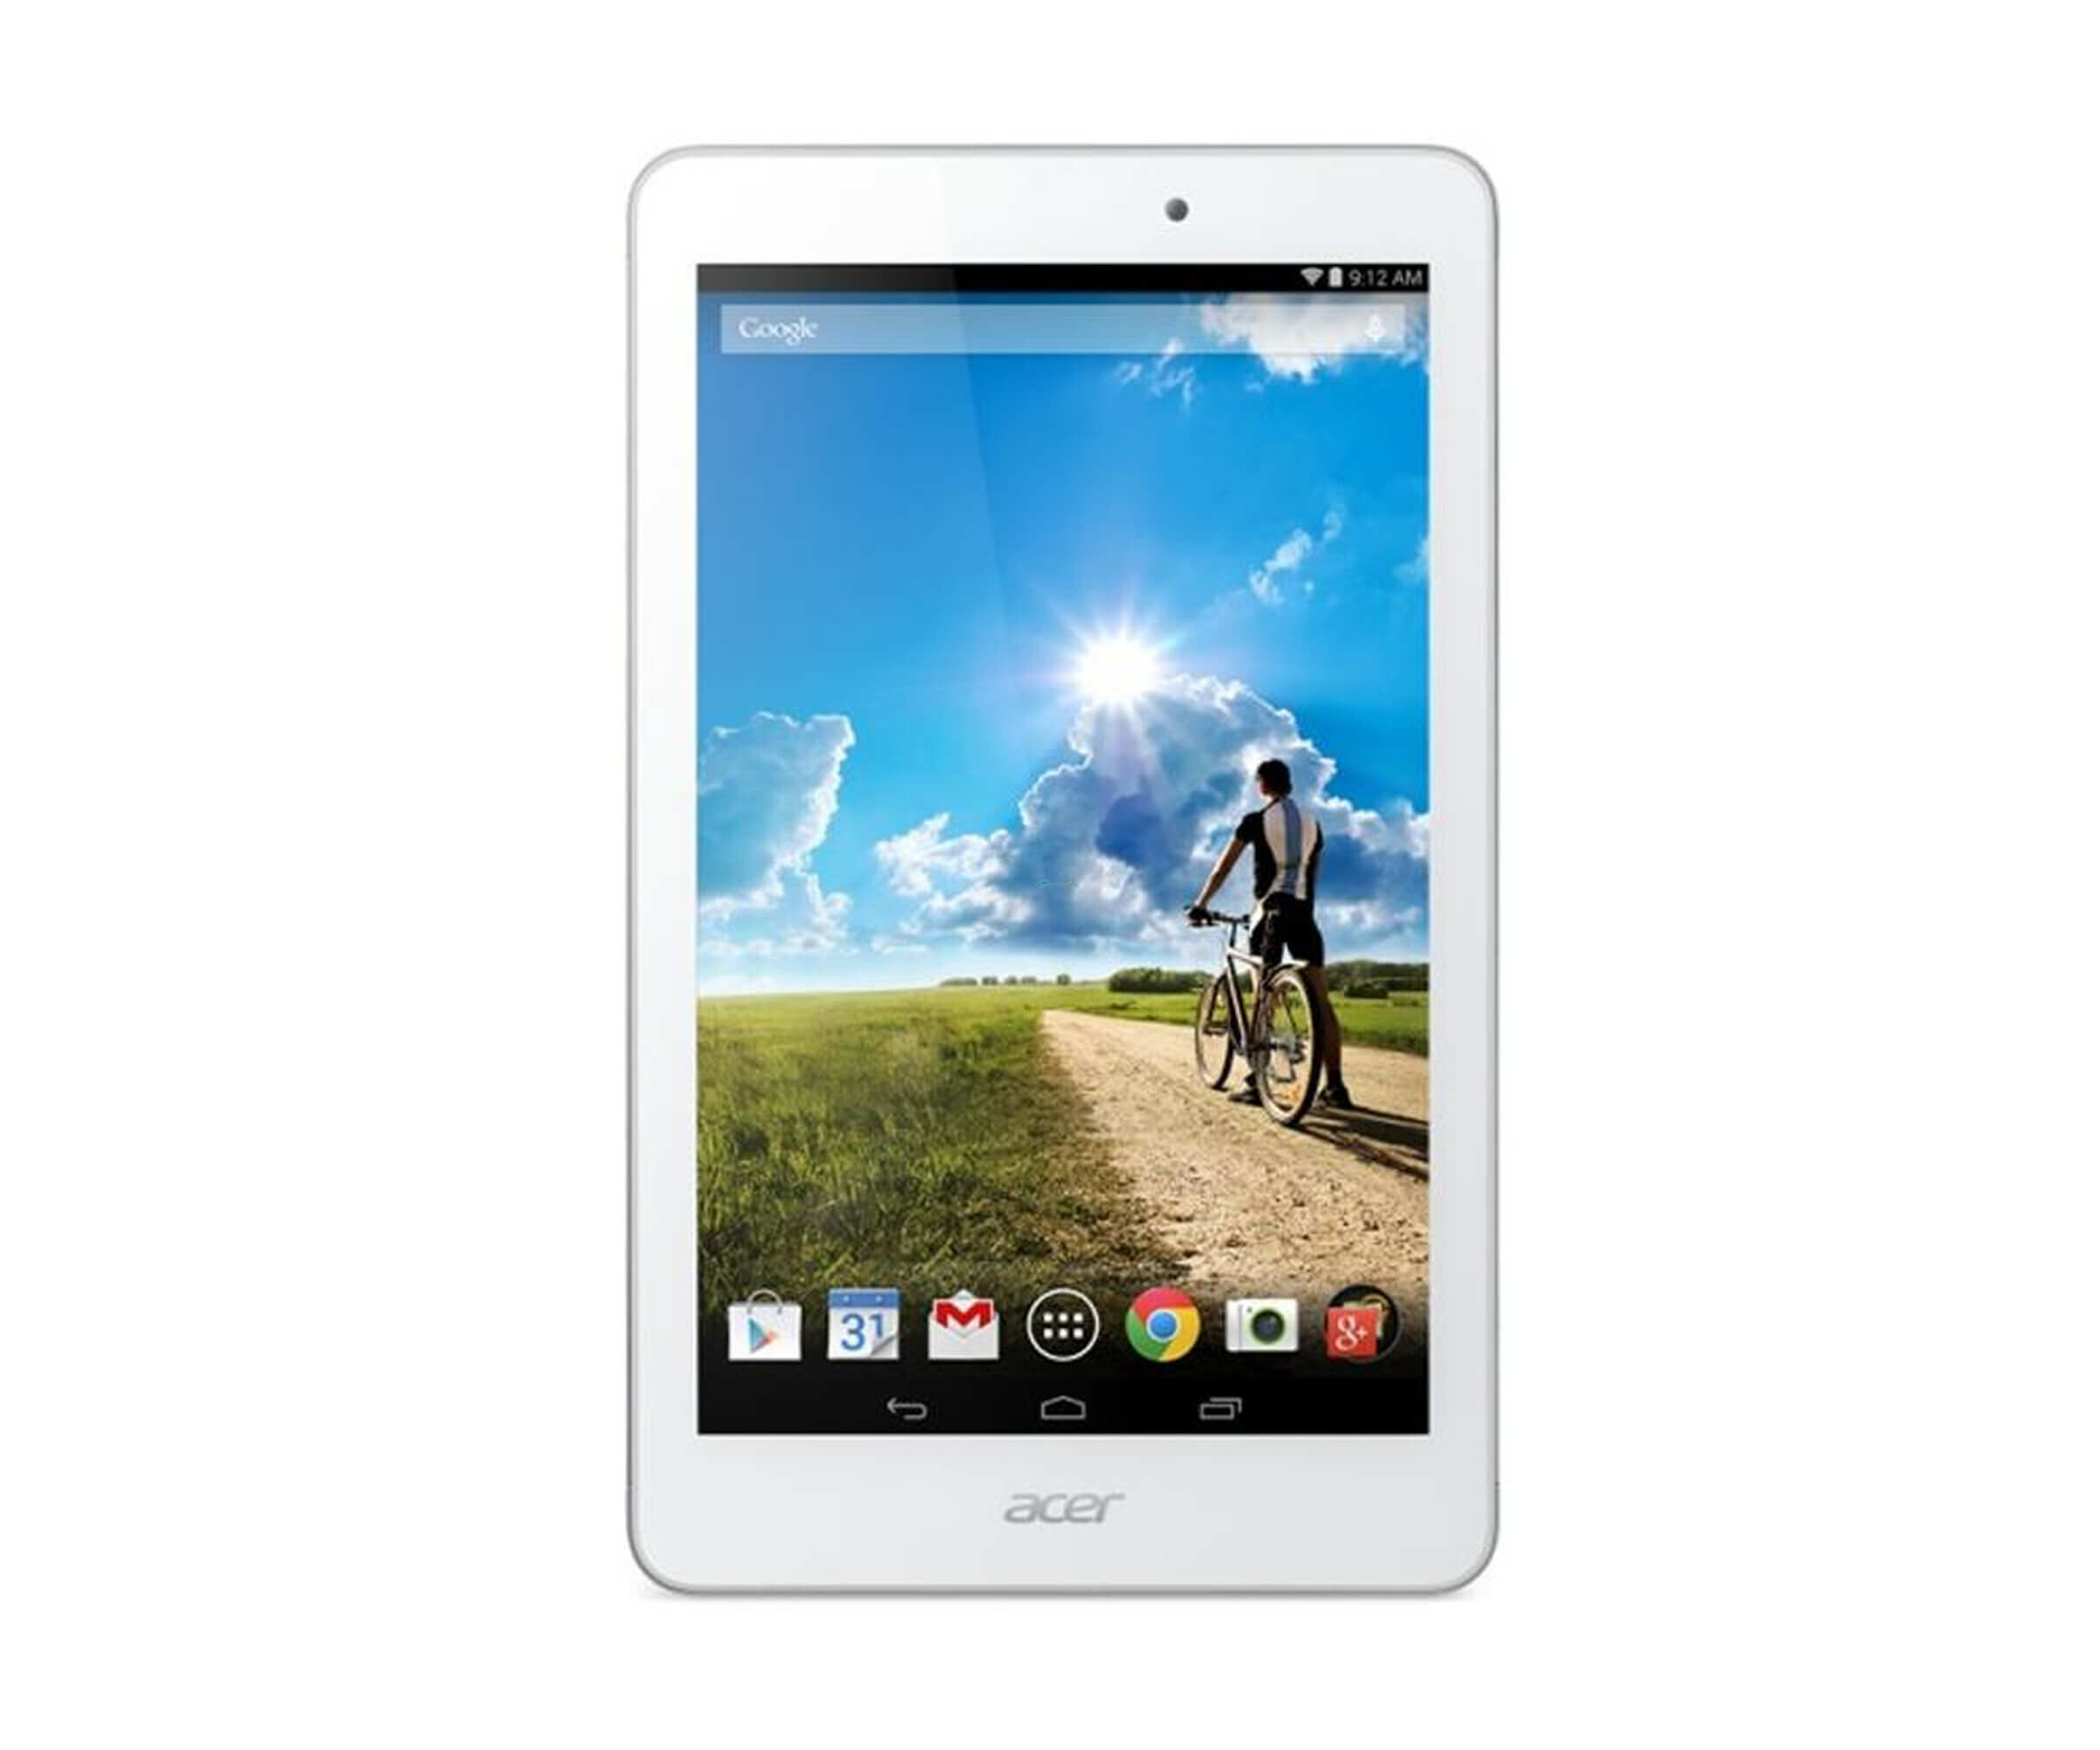 Tablets, Tablet PCs - Acer Iconia A1 840 Tablet 16 GB 20.3 cm ( 8' ) ( 1280 x 800 )  - Onlineshop Noteboox.de